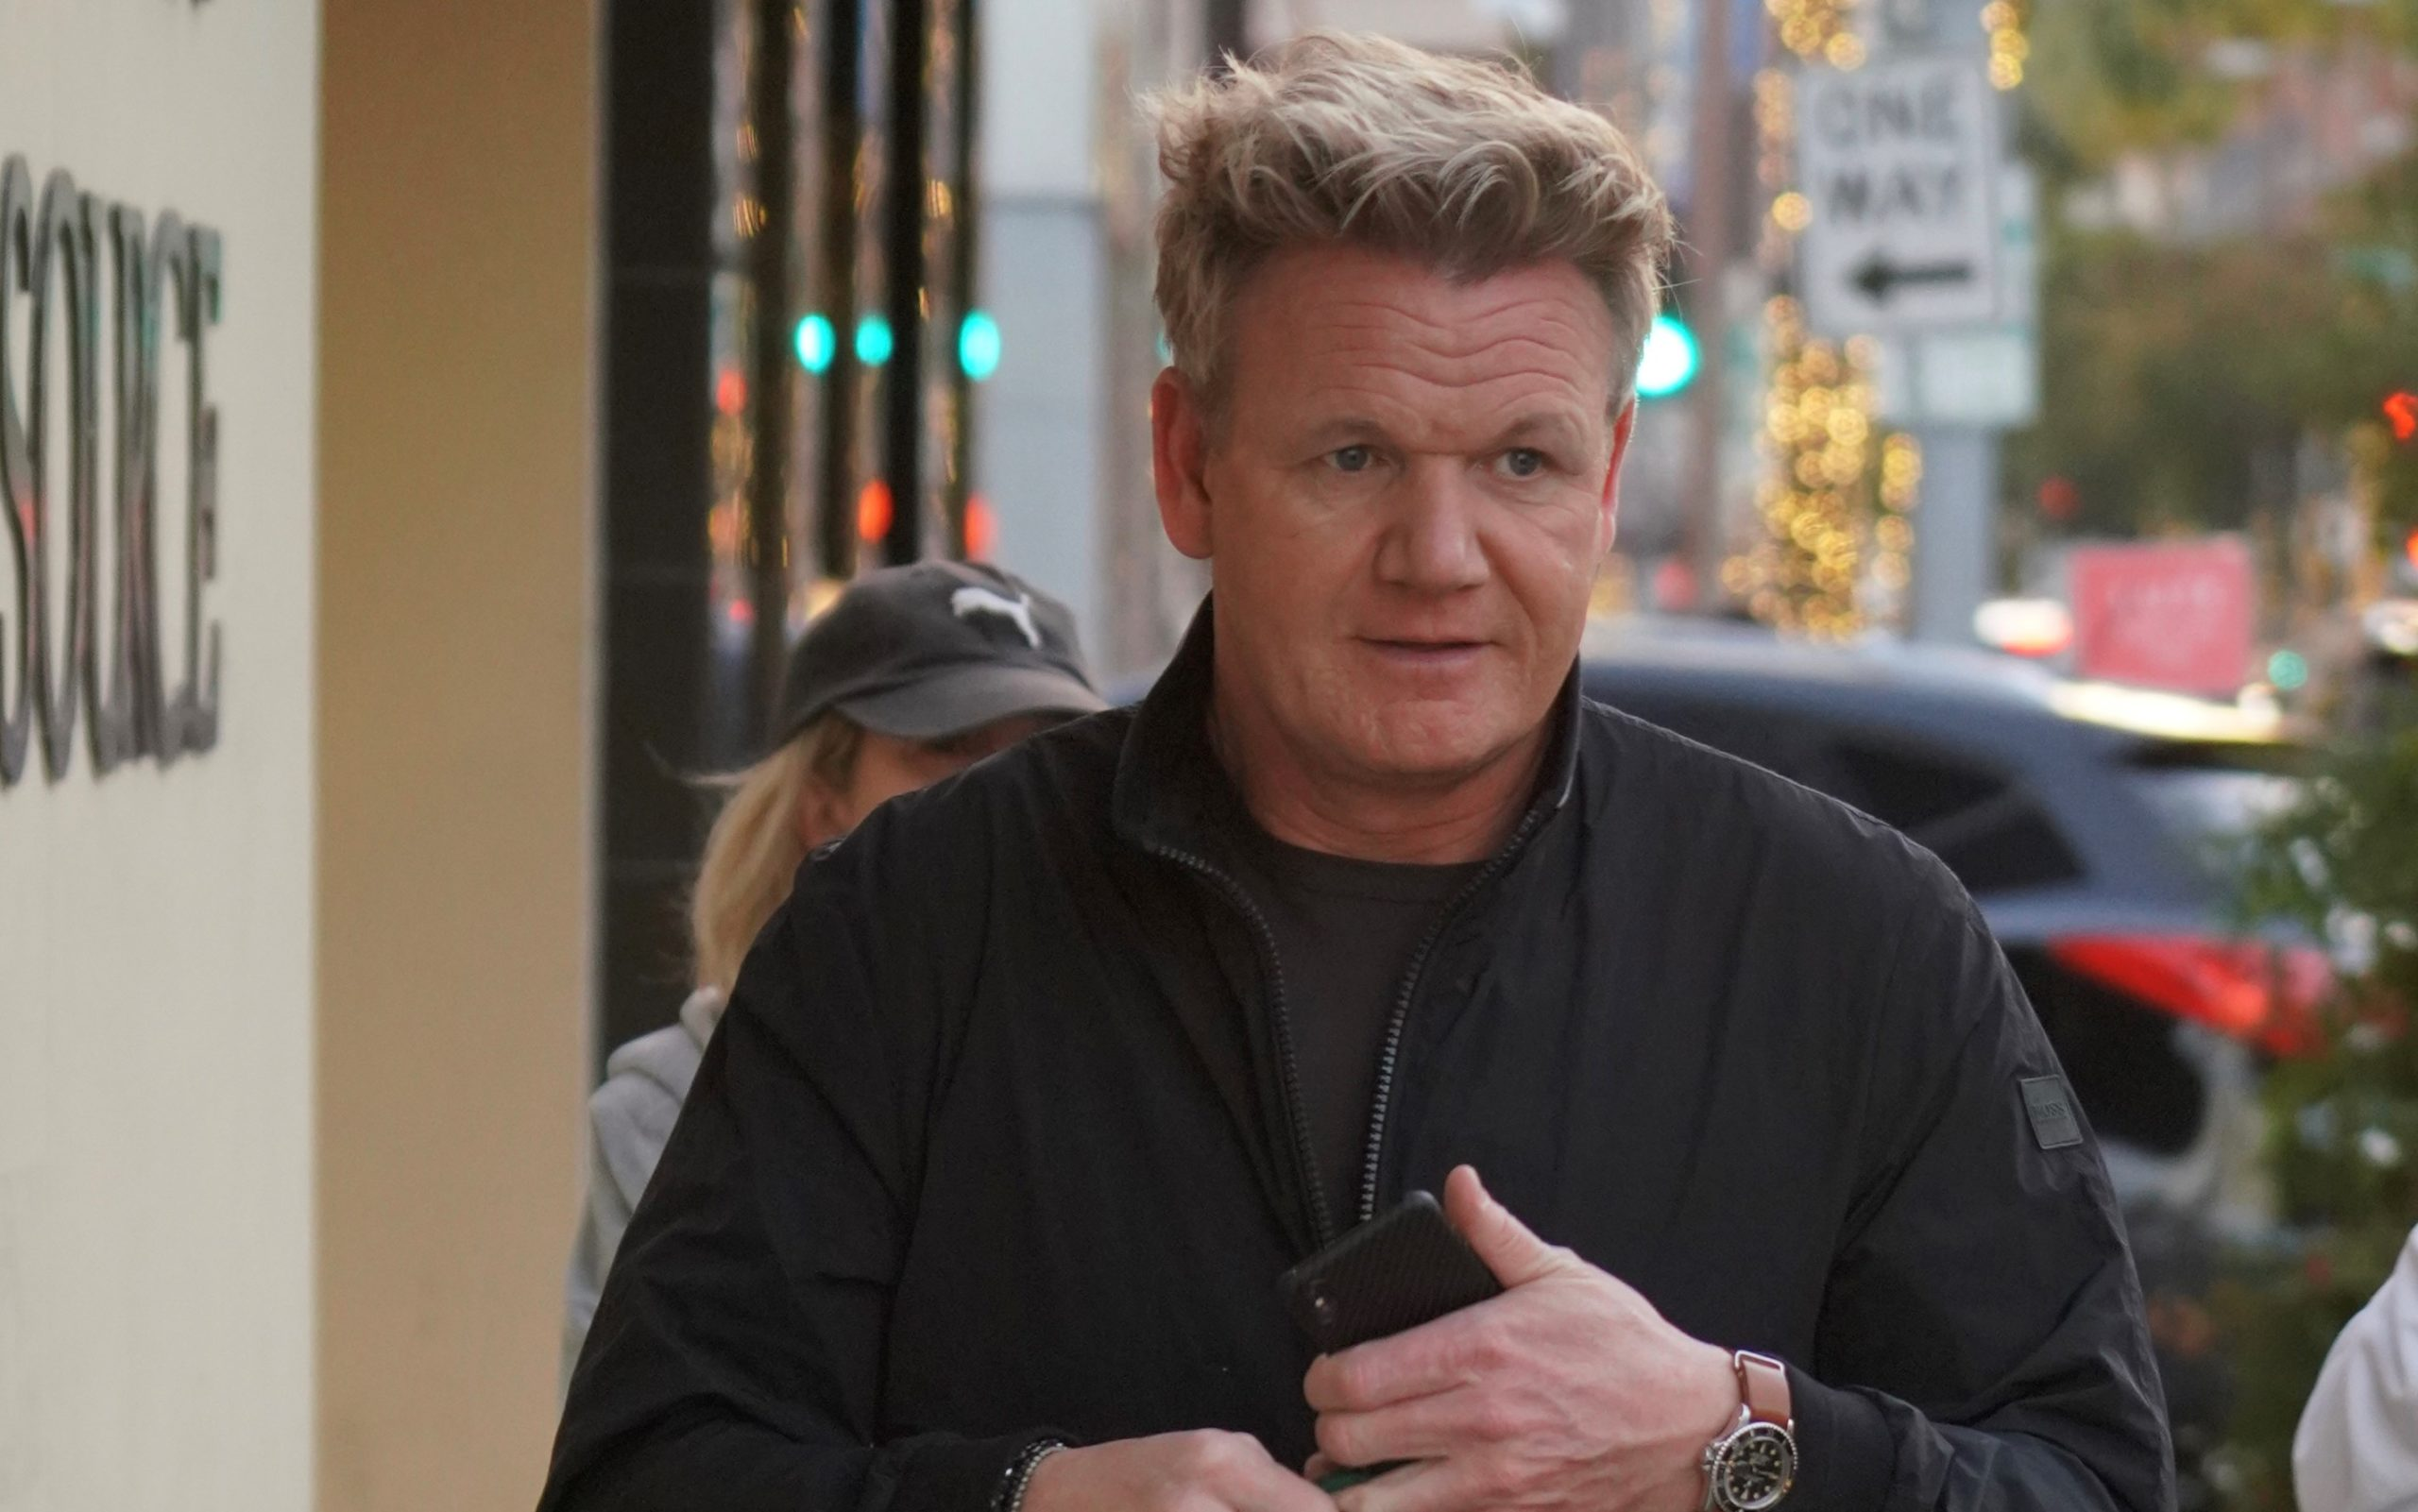 Gordon Ramsay takes lookalike son Oscar to work